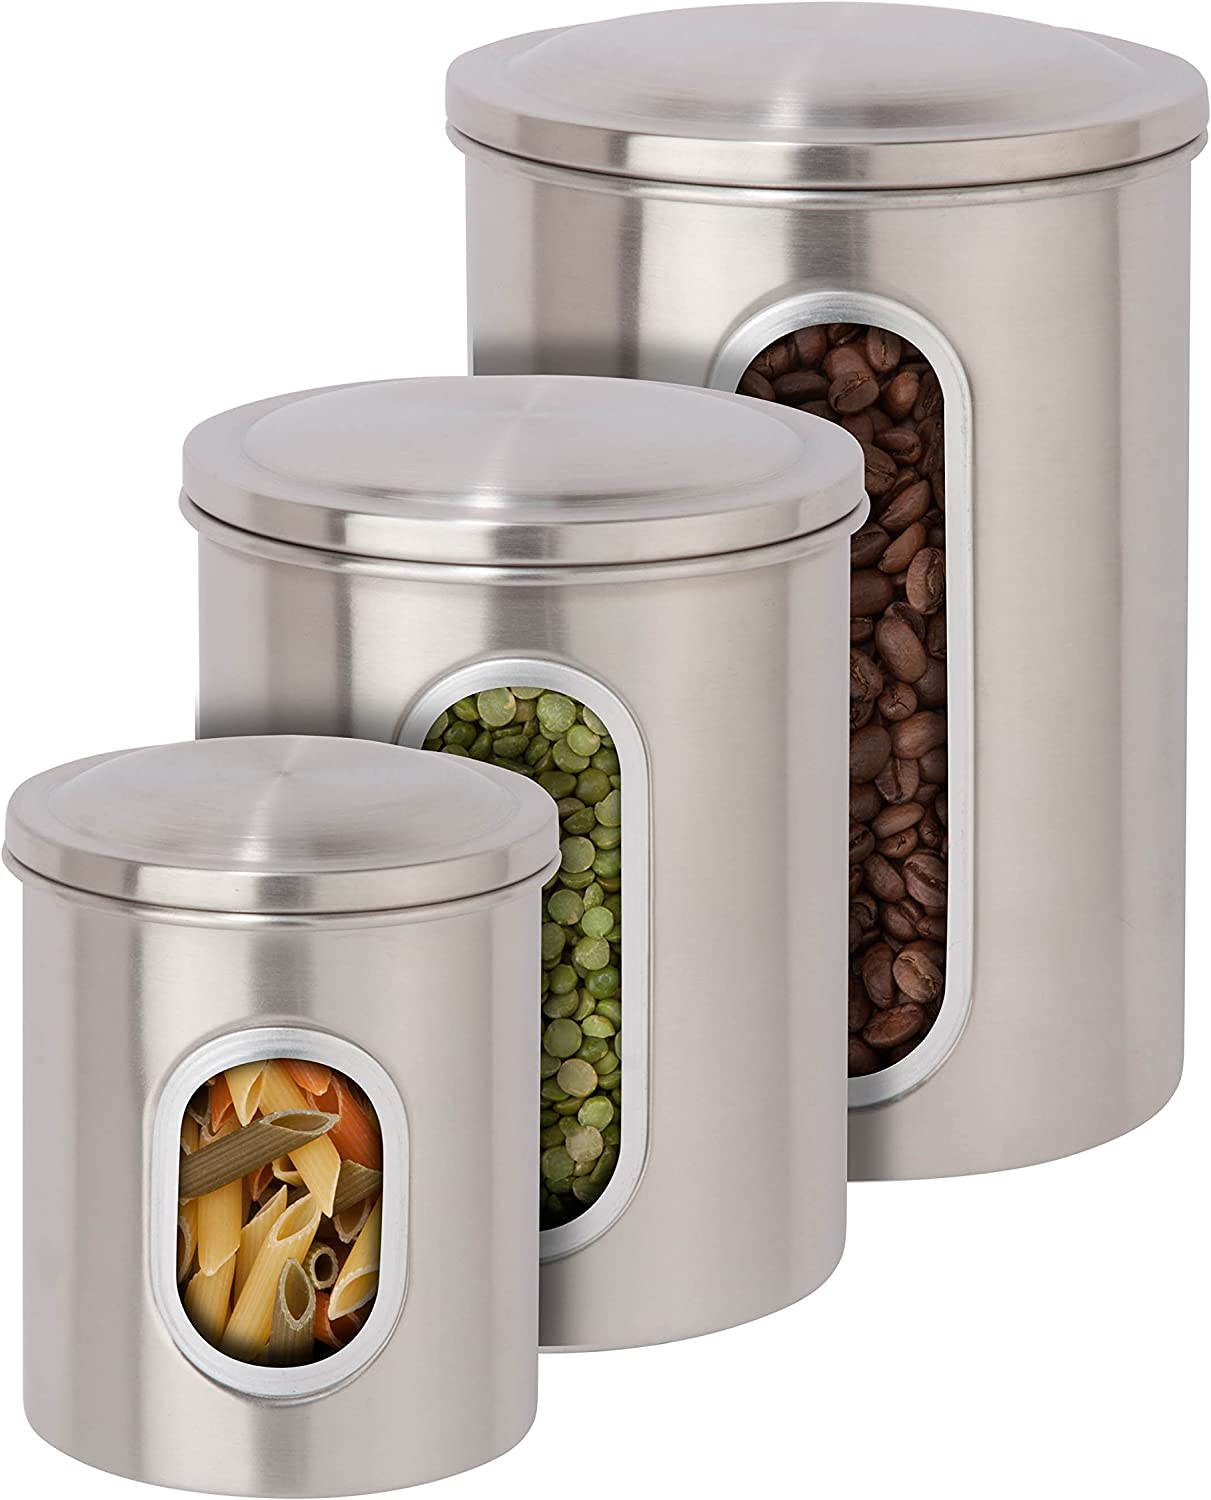 Honey-Can-Do 3-Piece Metal Nested Canister Storage Set, Steel